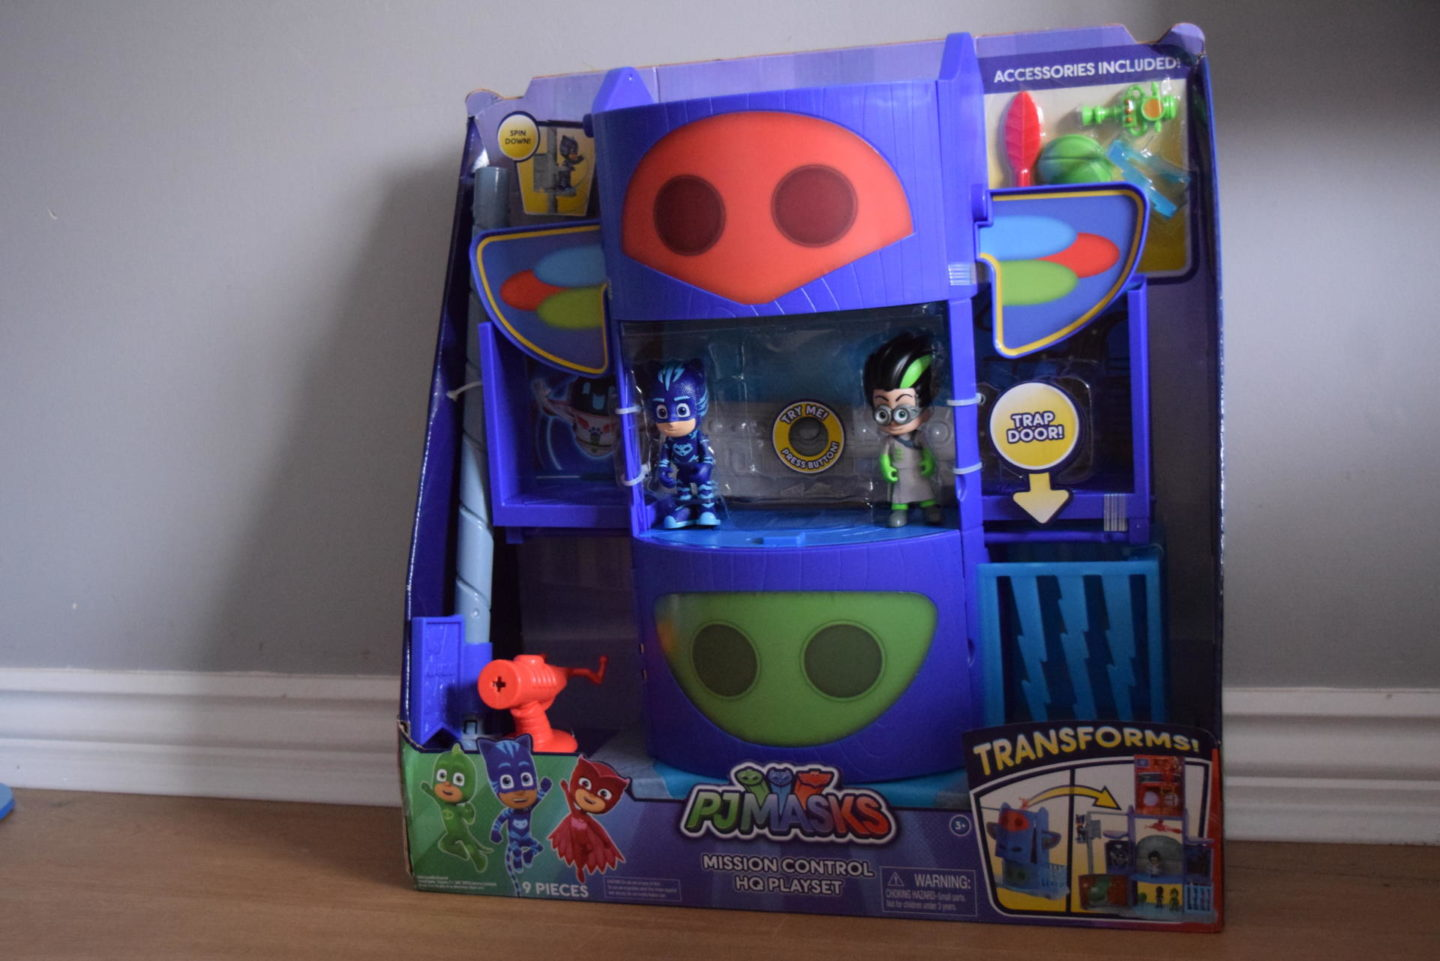 Review | PJ Masks Mission Control HQ play set